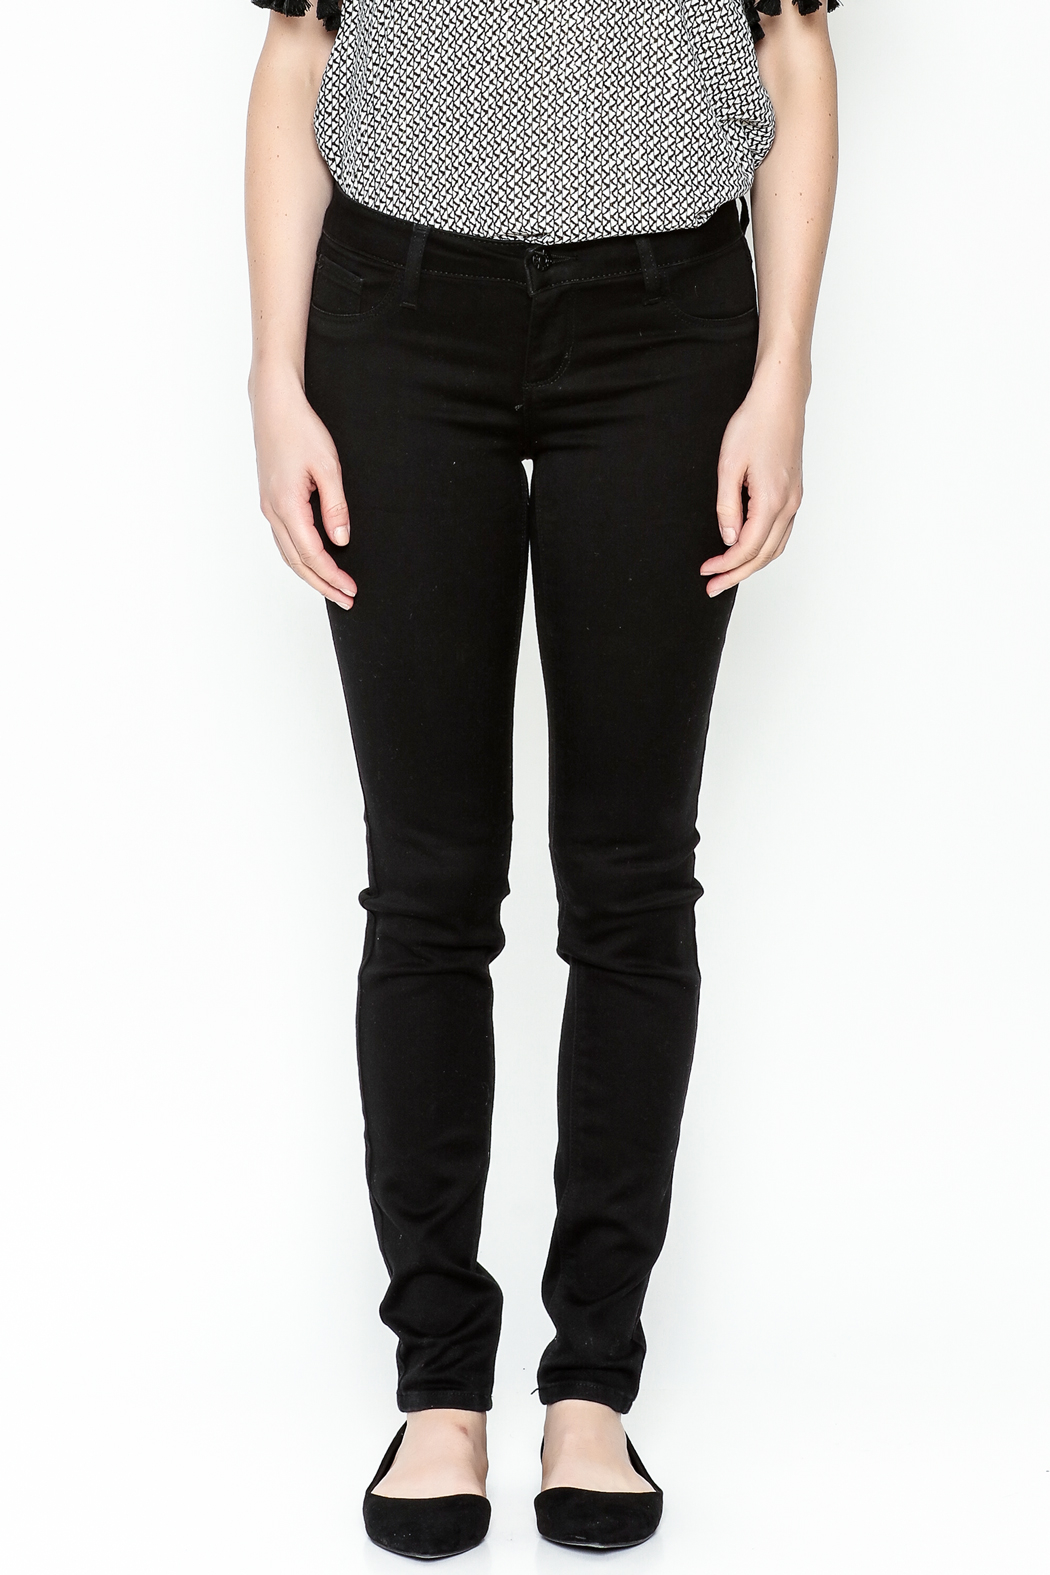 Polly & Esther Black Jeans - Front Full Image